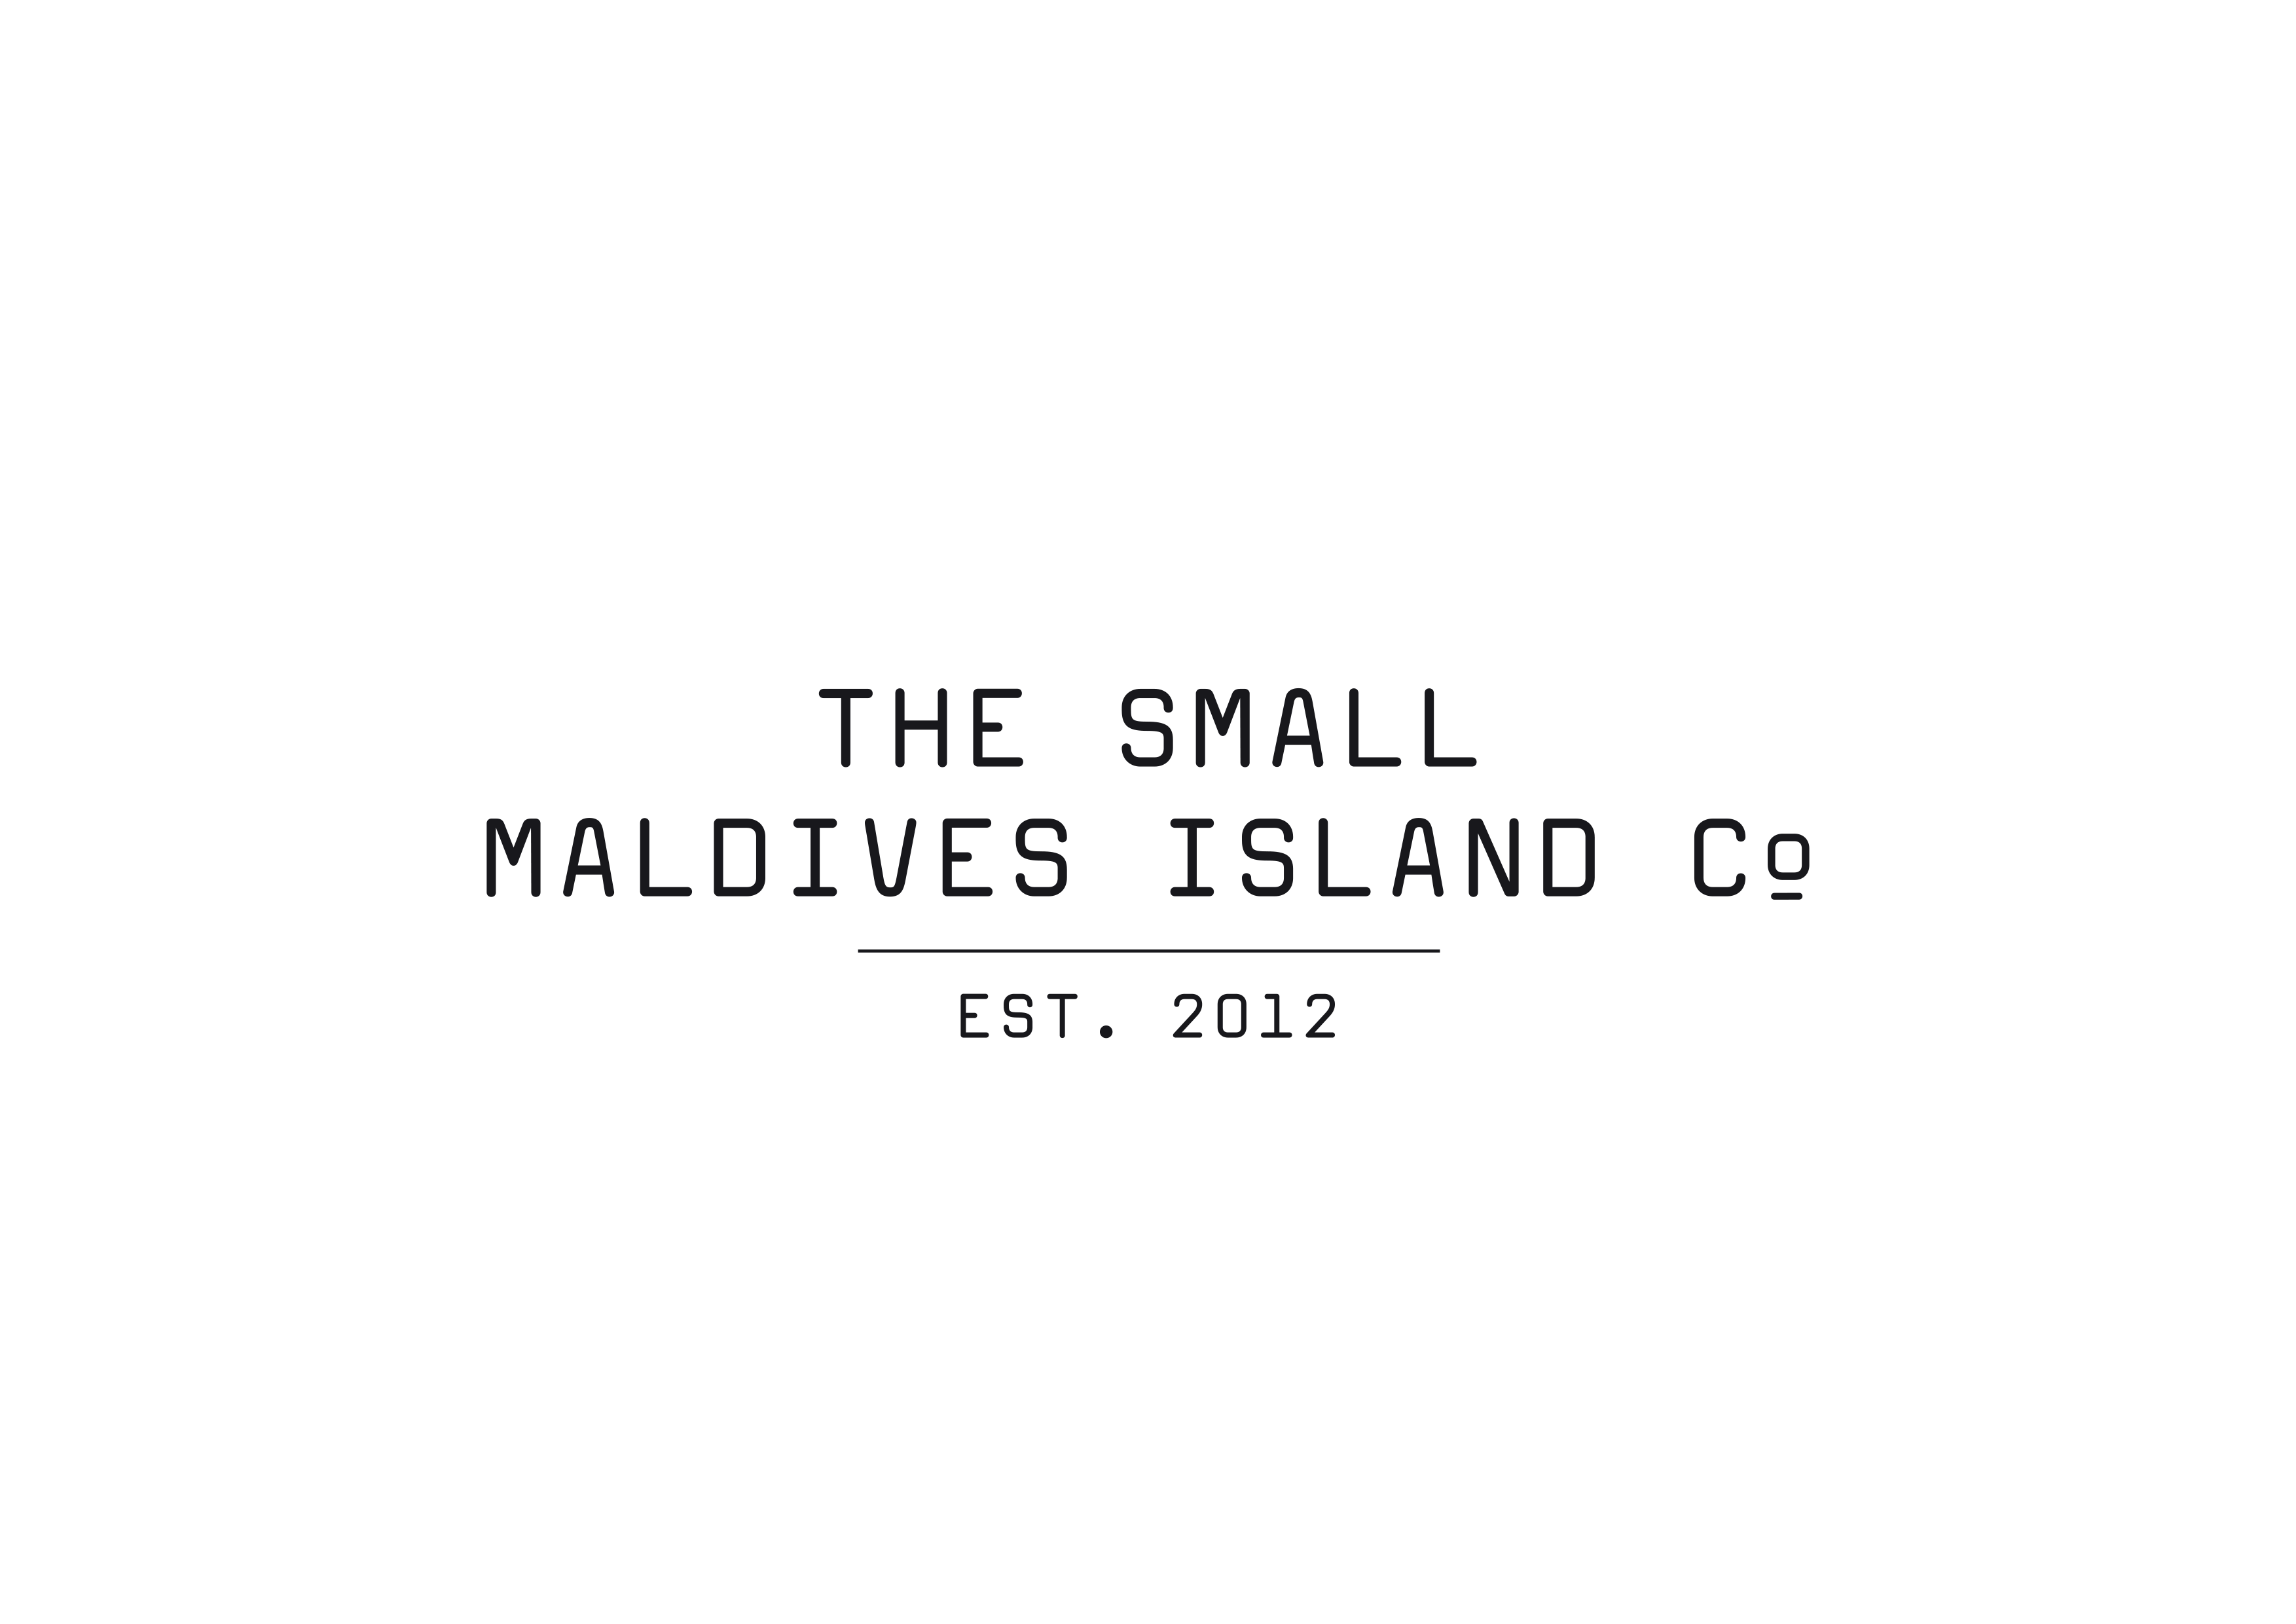 The Small Maldives Island Co Logo